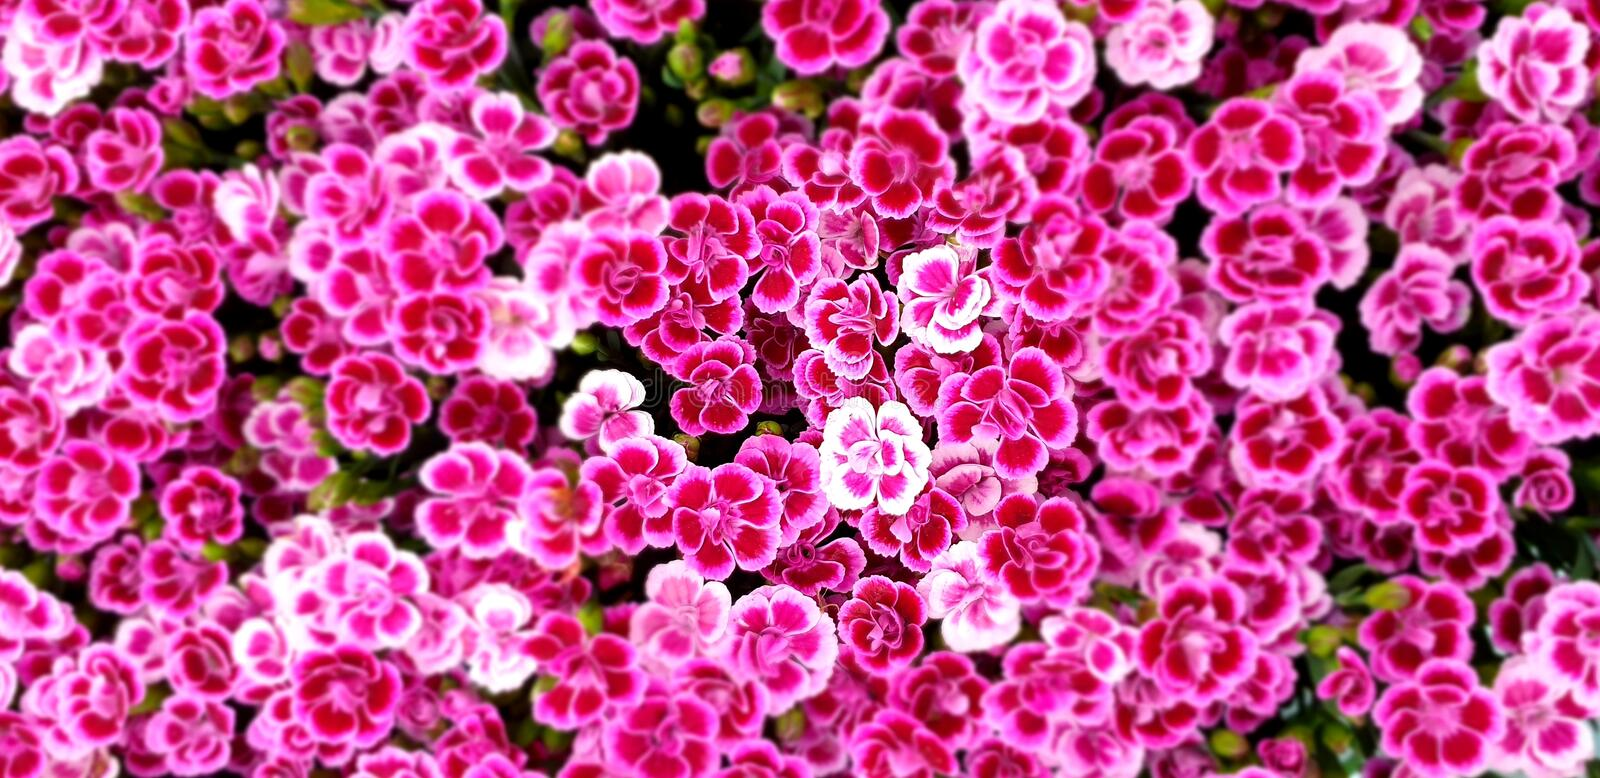 Dianthus small pink purple flowery flower flowers background stock images